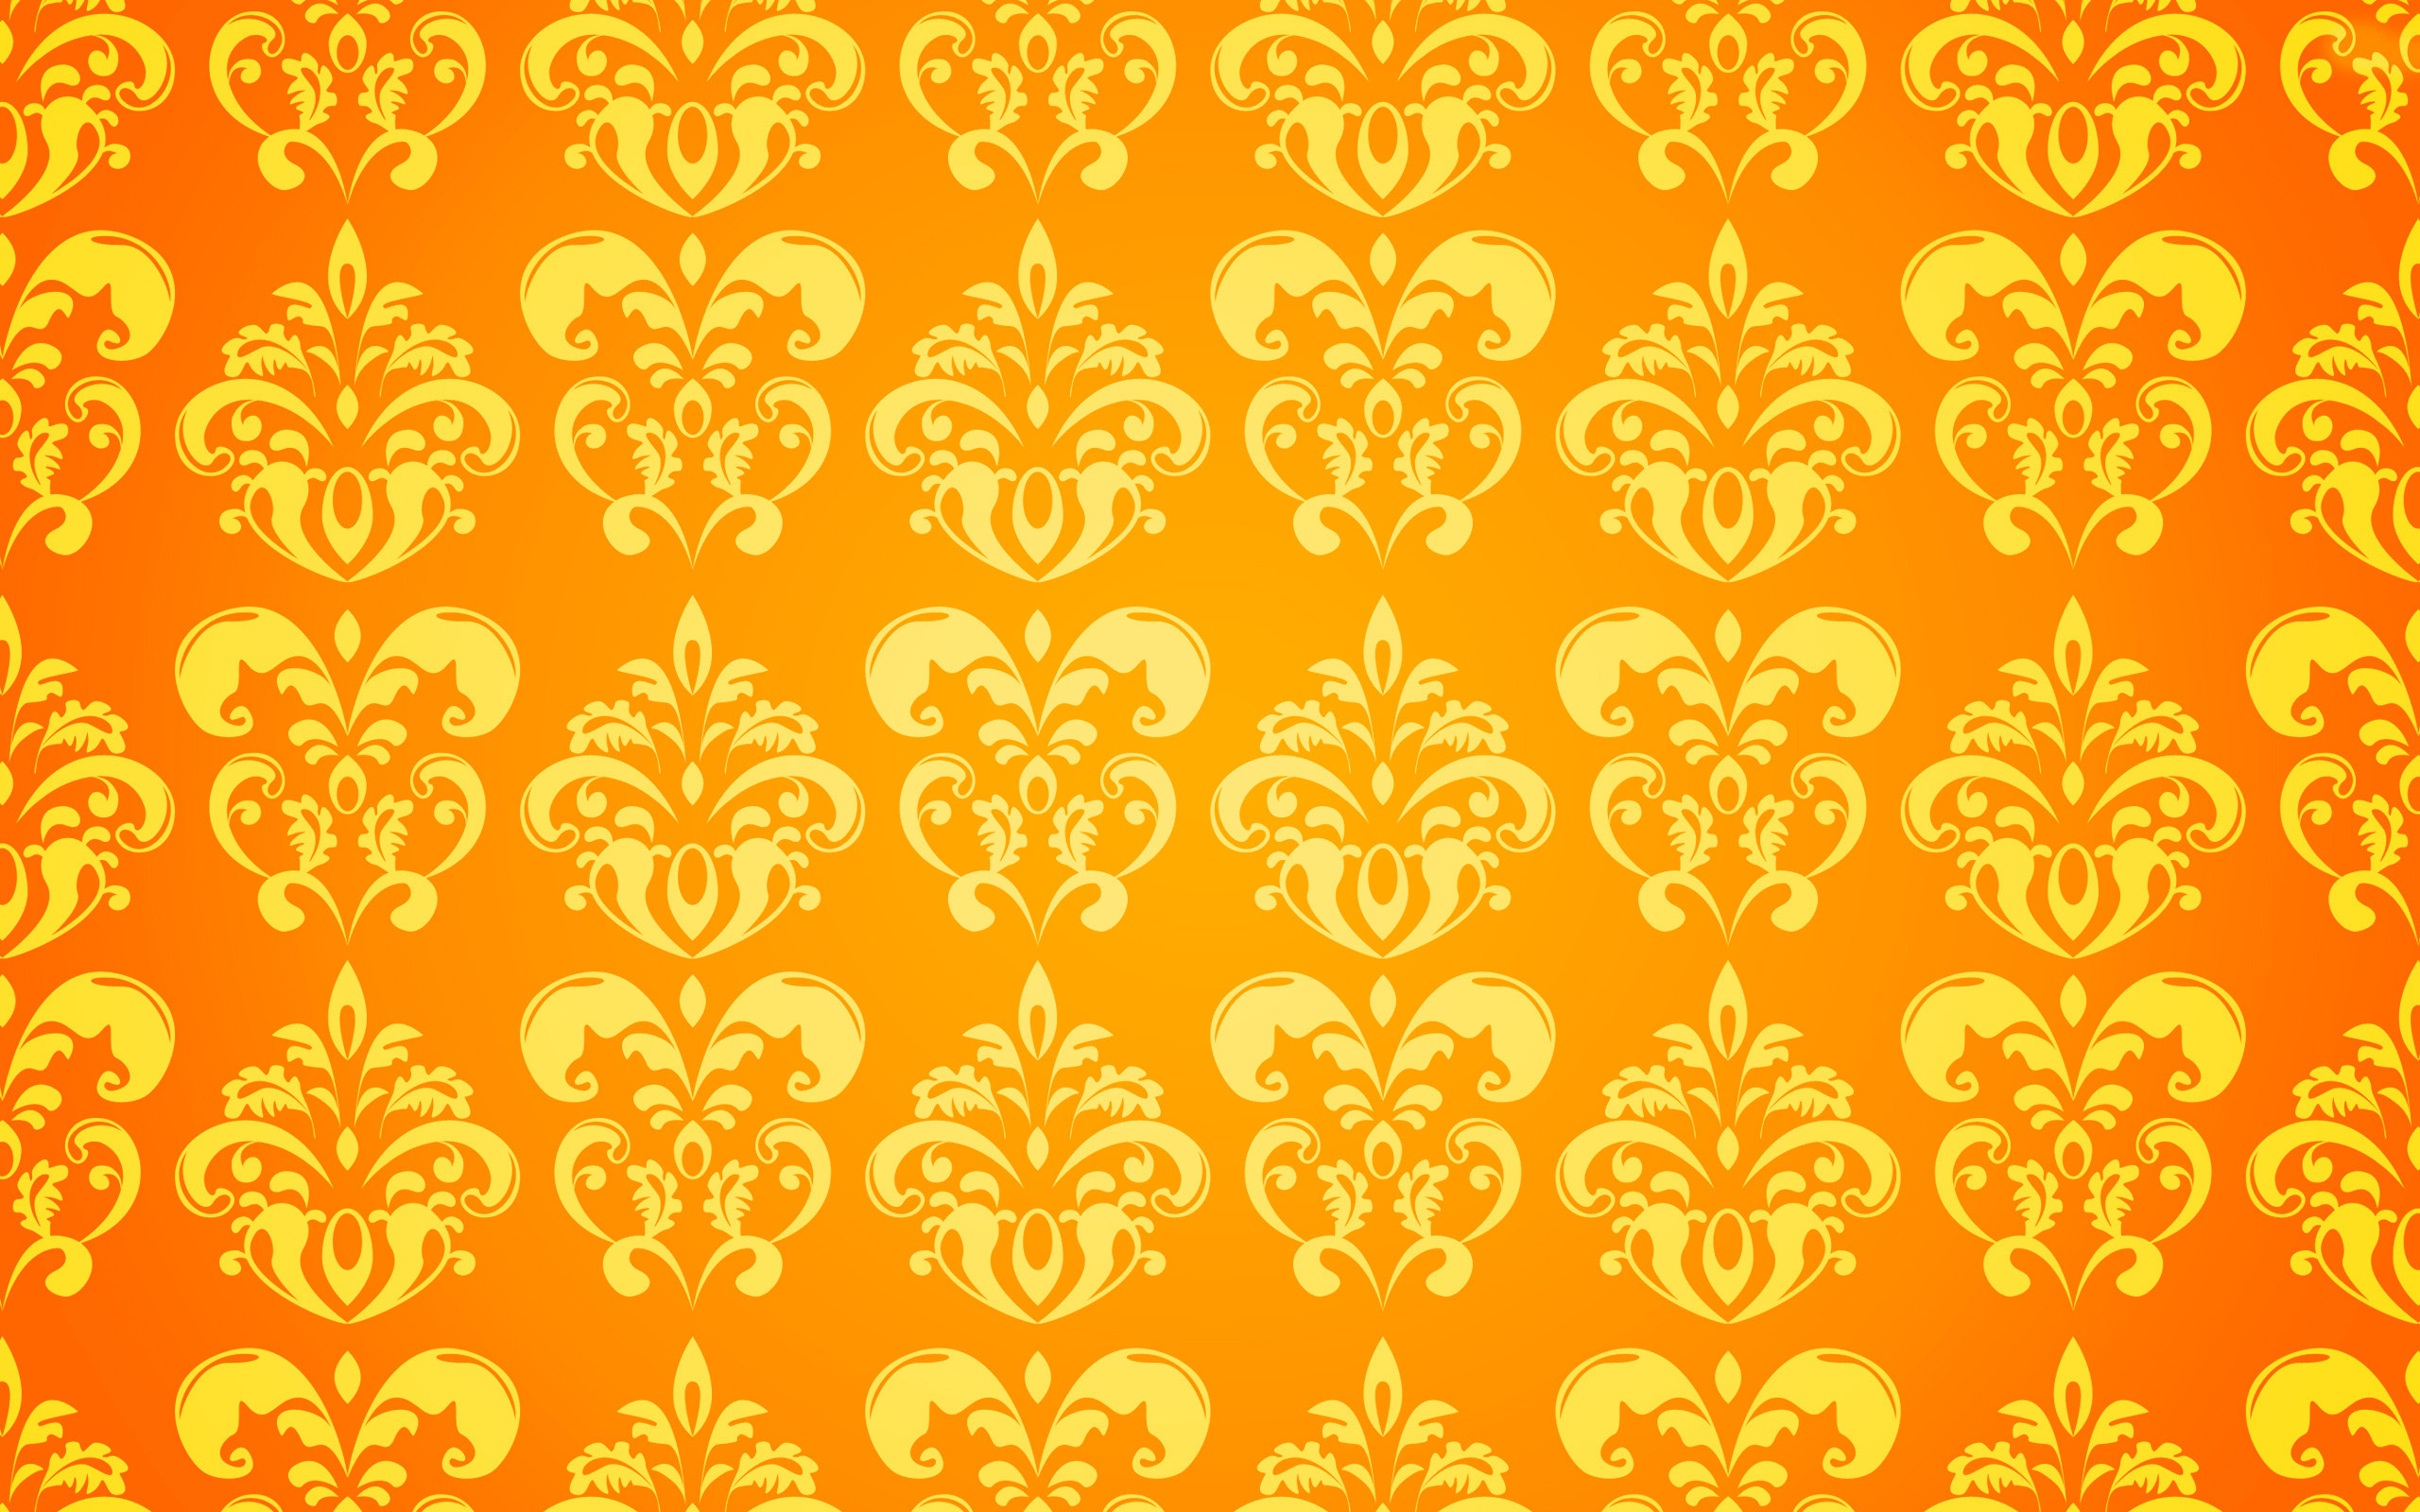 Orange Flowered Wallpaper